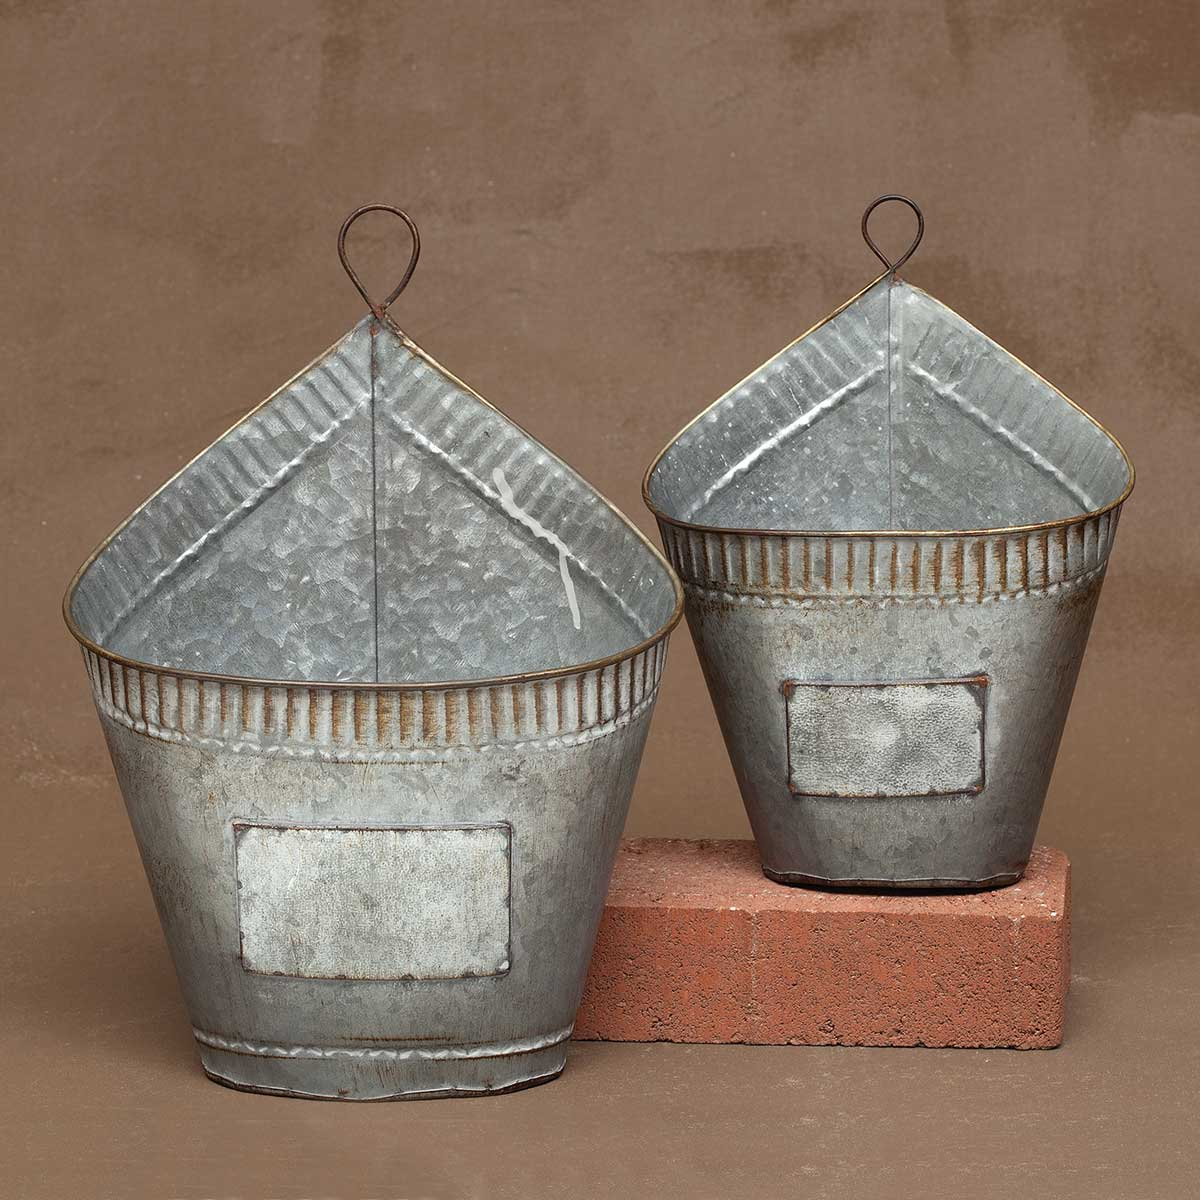 OVAL WEATHERED METAL WALL PLANTER SET OF 2